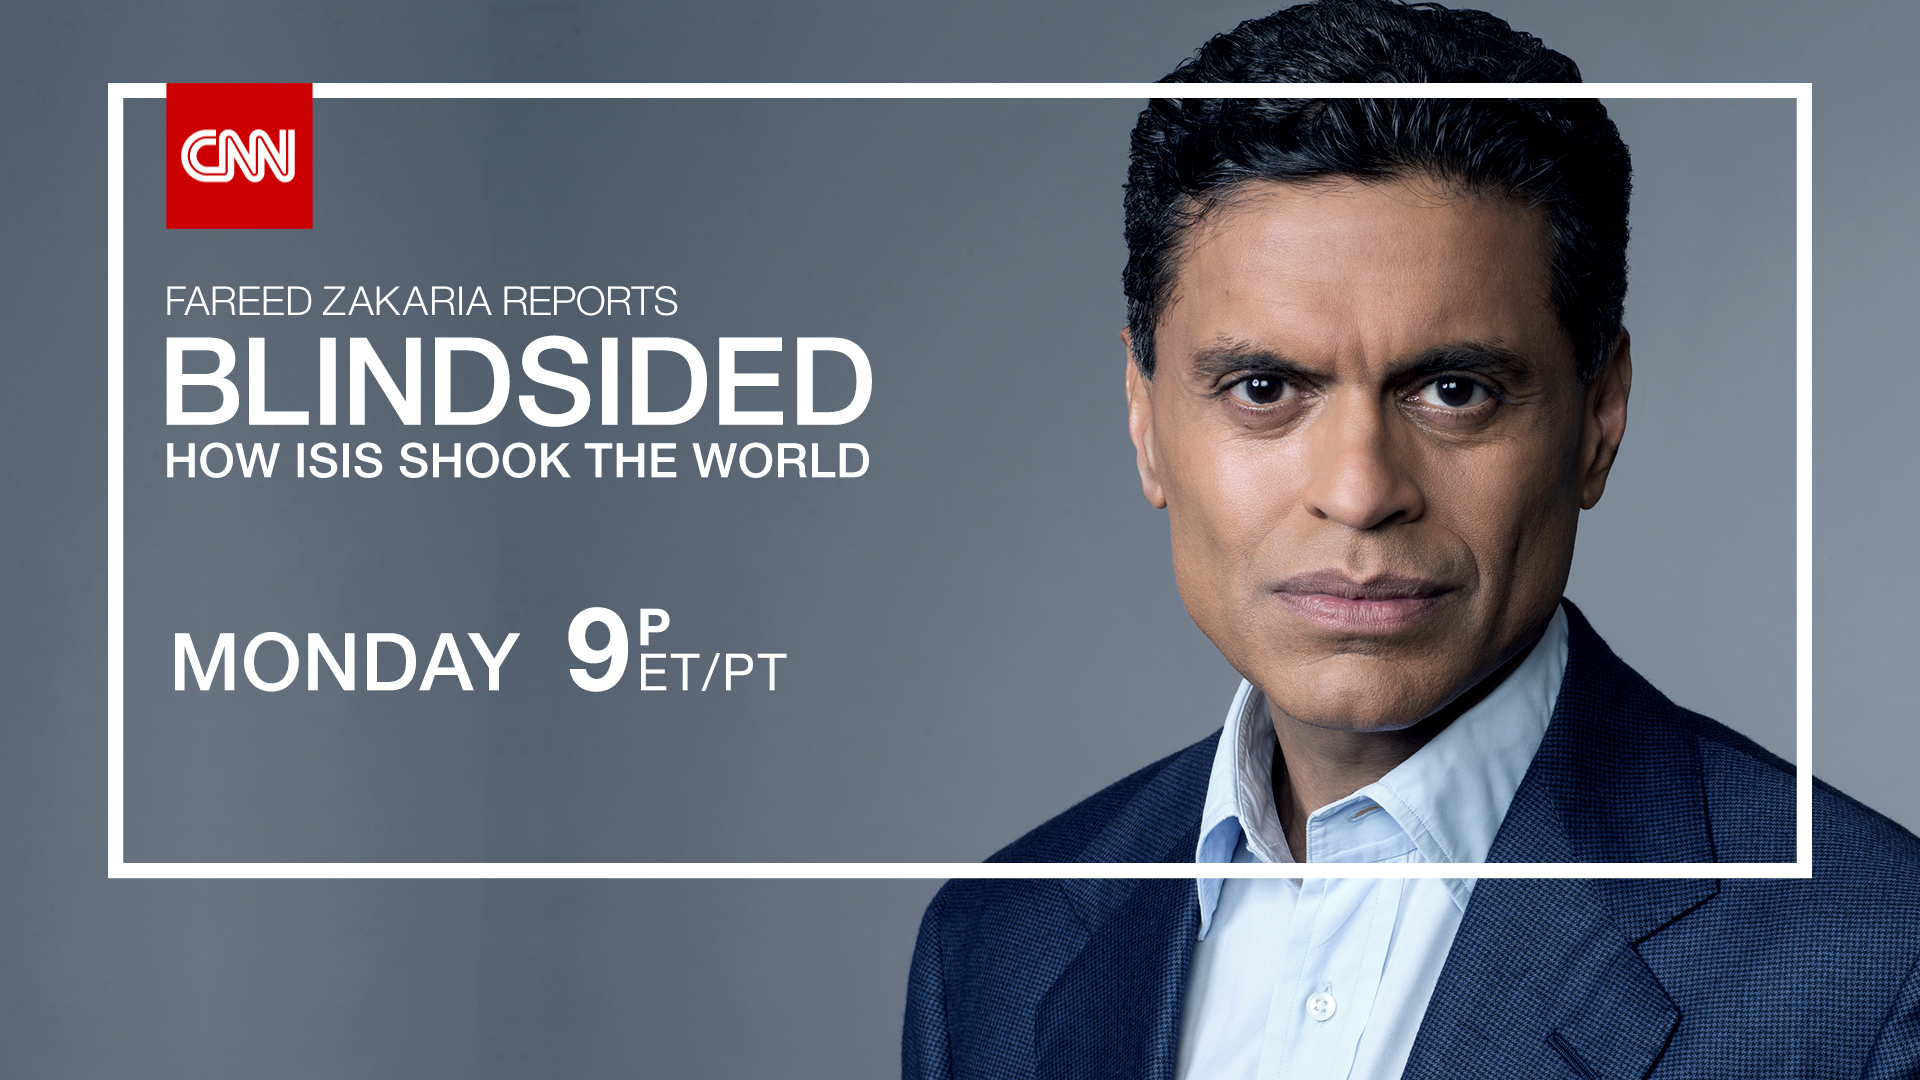 CNN's Fareed Zakaria Hosts 'Blindsided: How ISIS Shook the World' for Monday, May 11